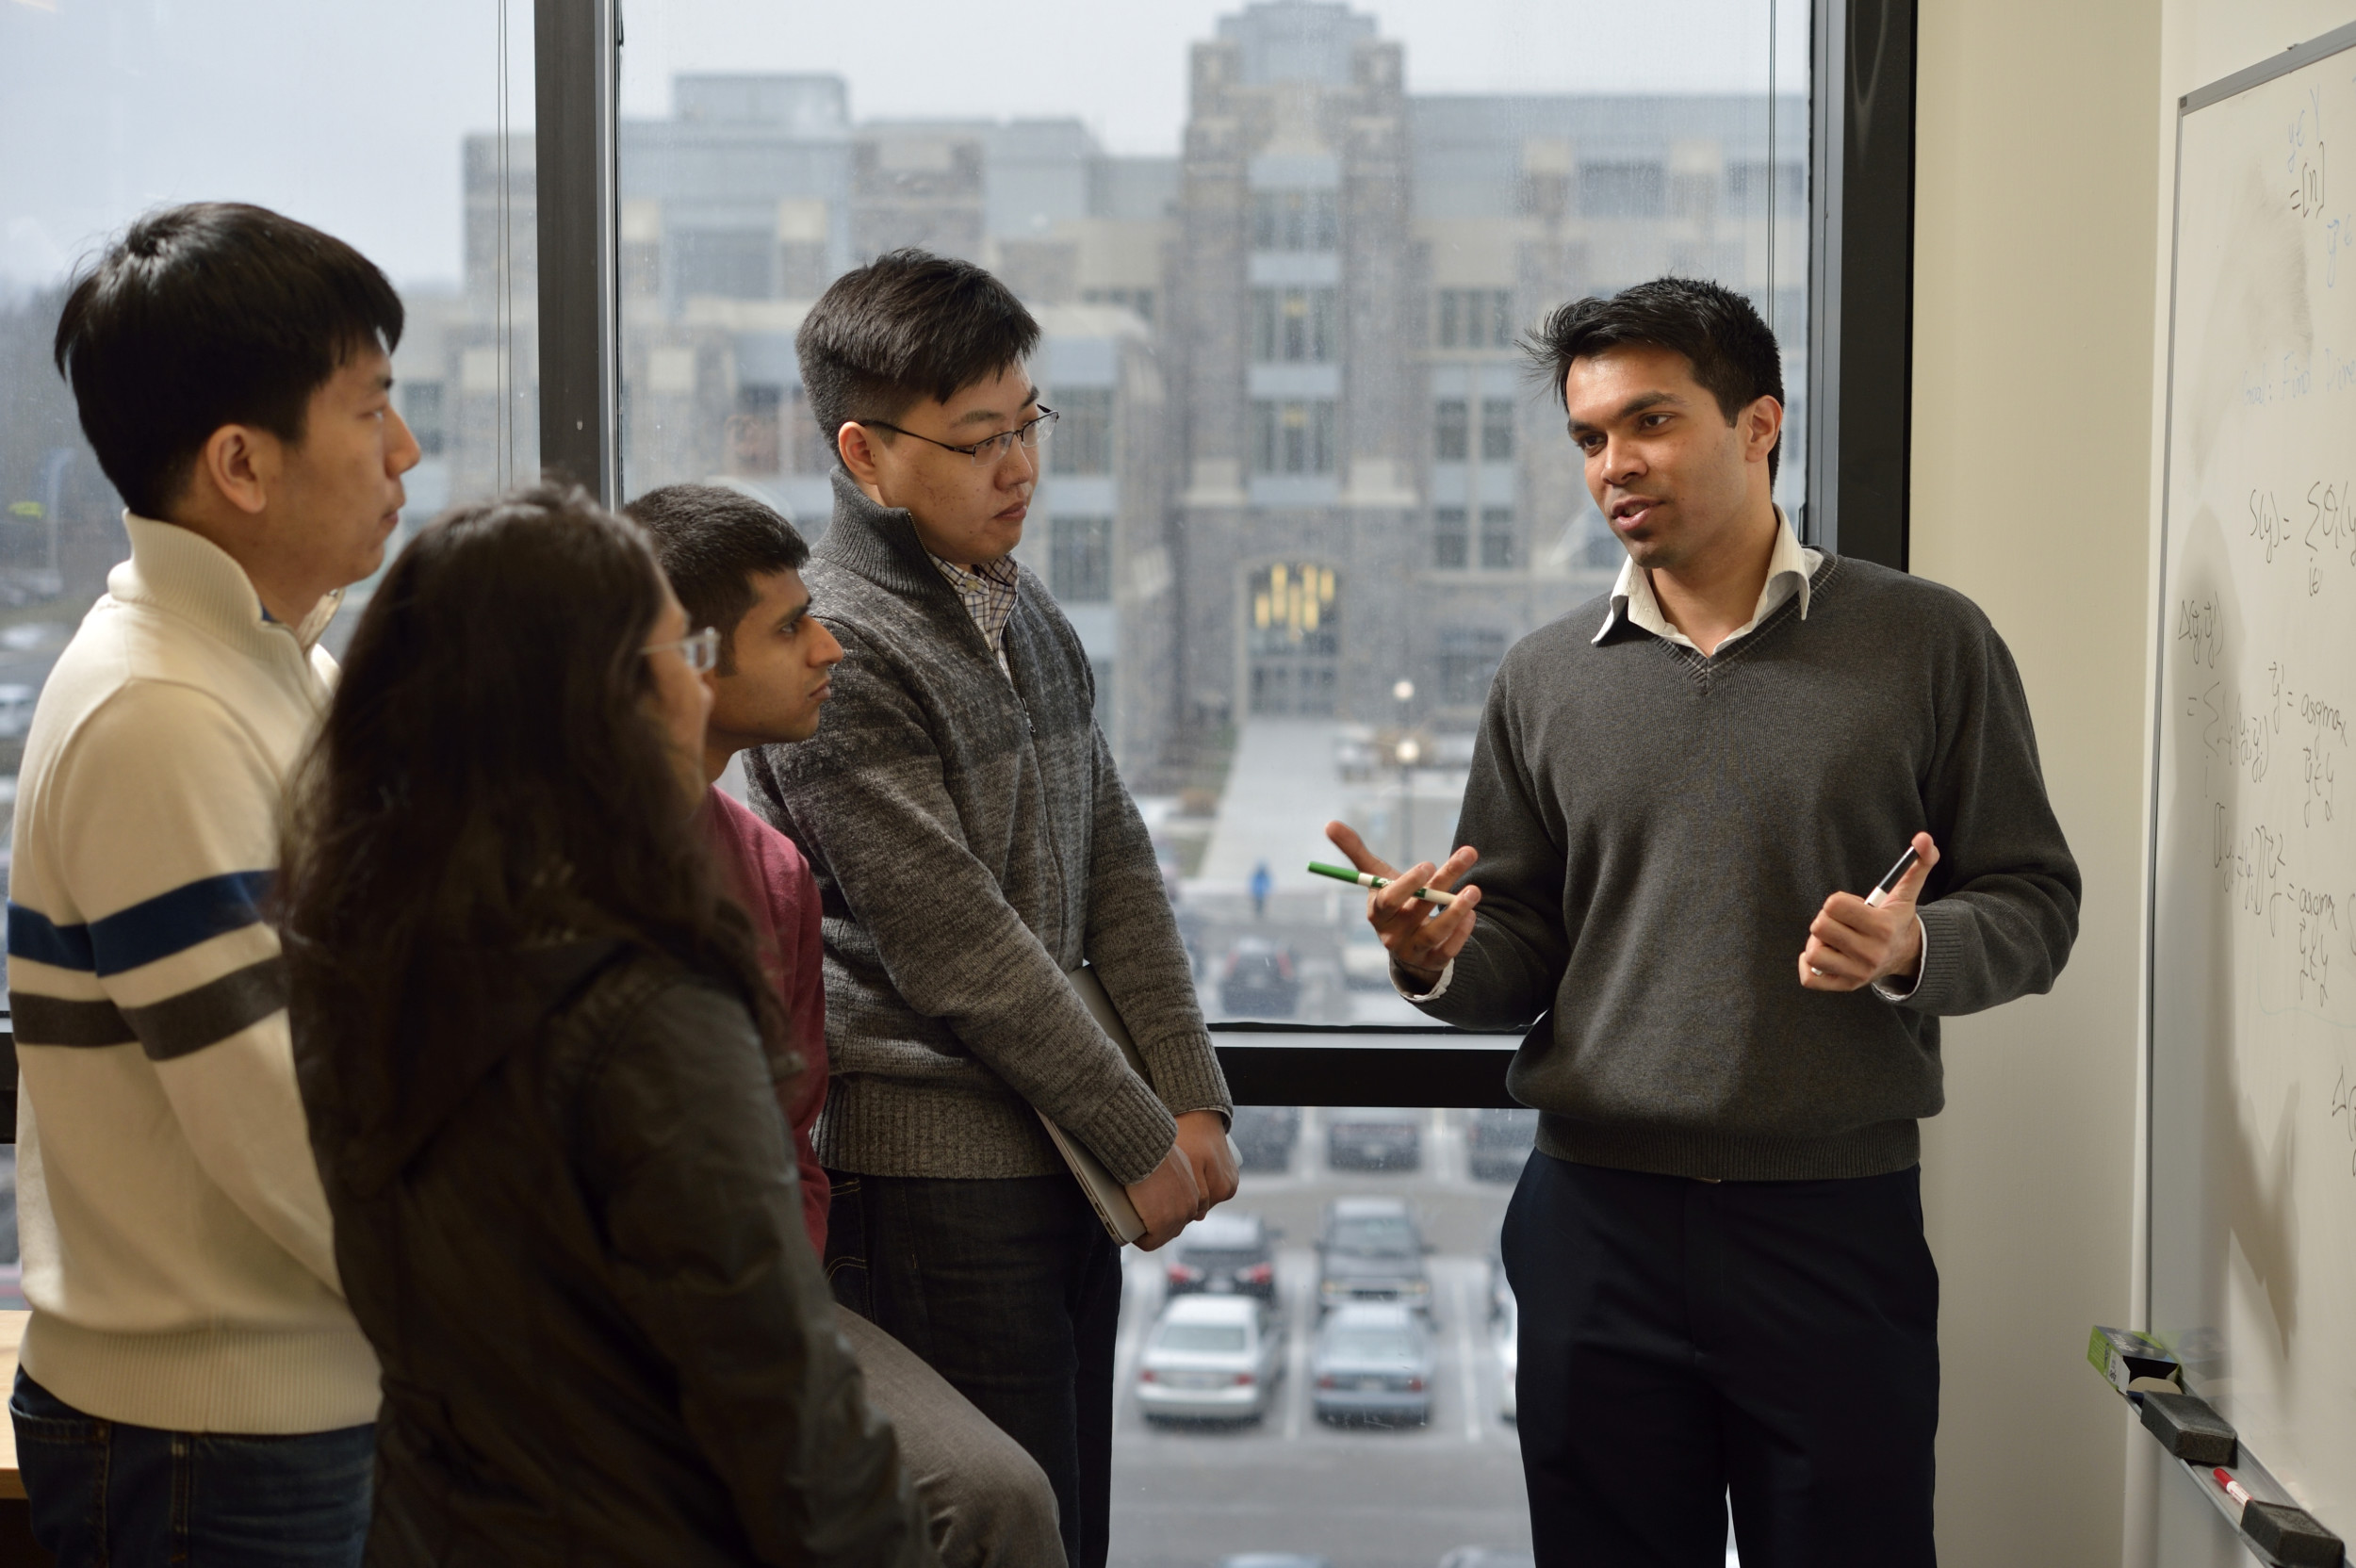 Dhruv Batra, Assistant Professor, Electrical and Computer Engineering, ECE, Discovery Analytics Center, students, classroom